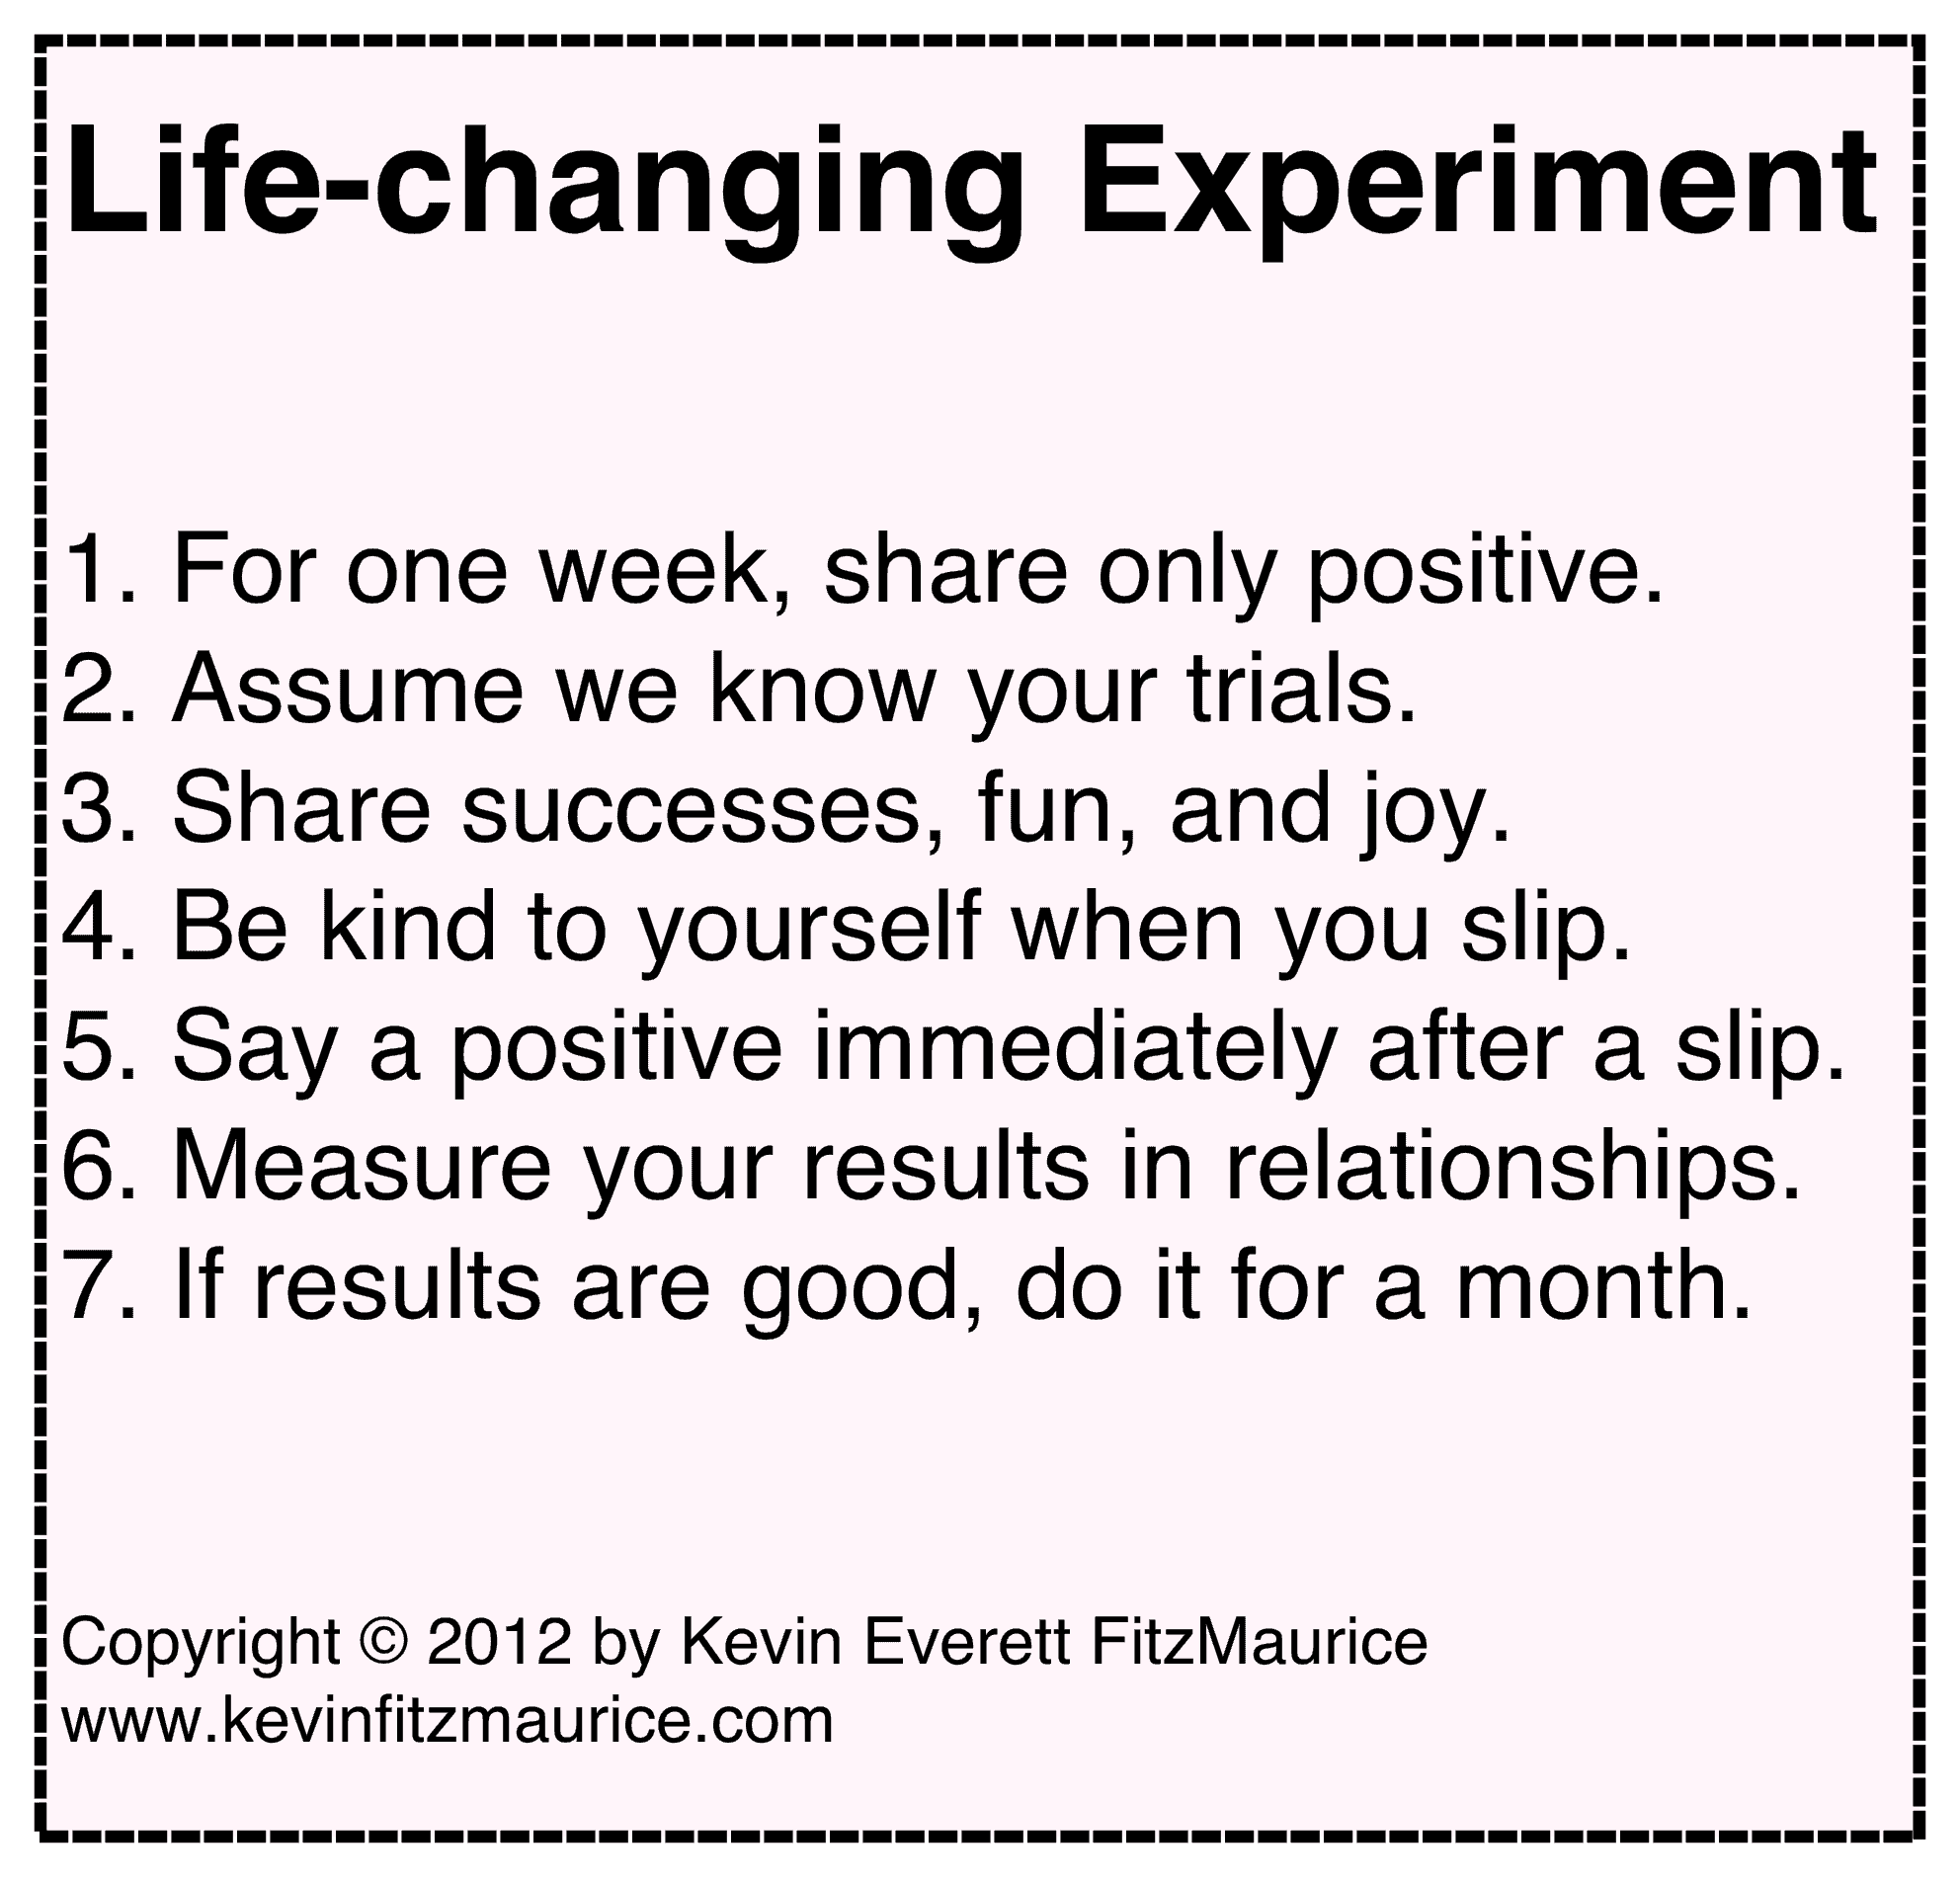 life-changing experiment